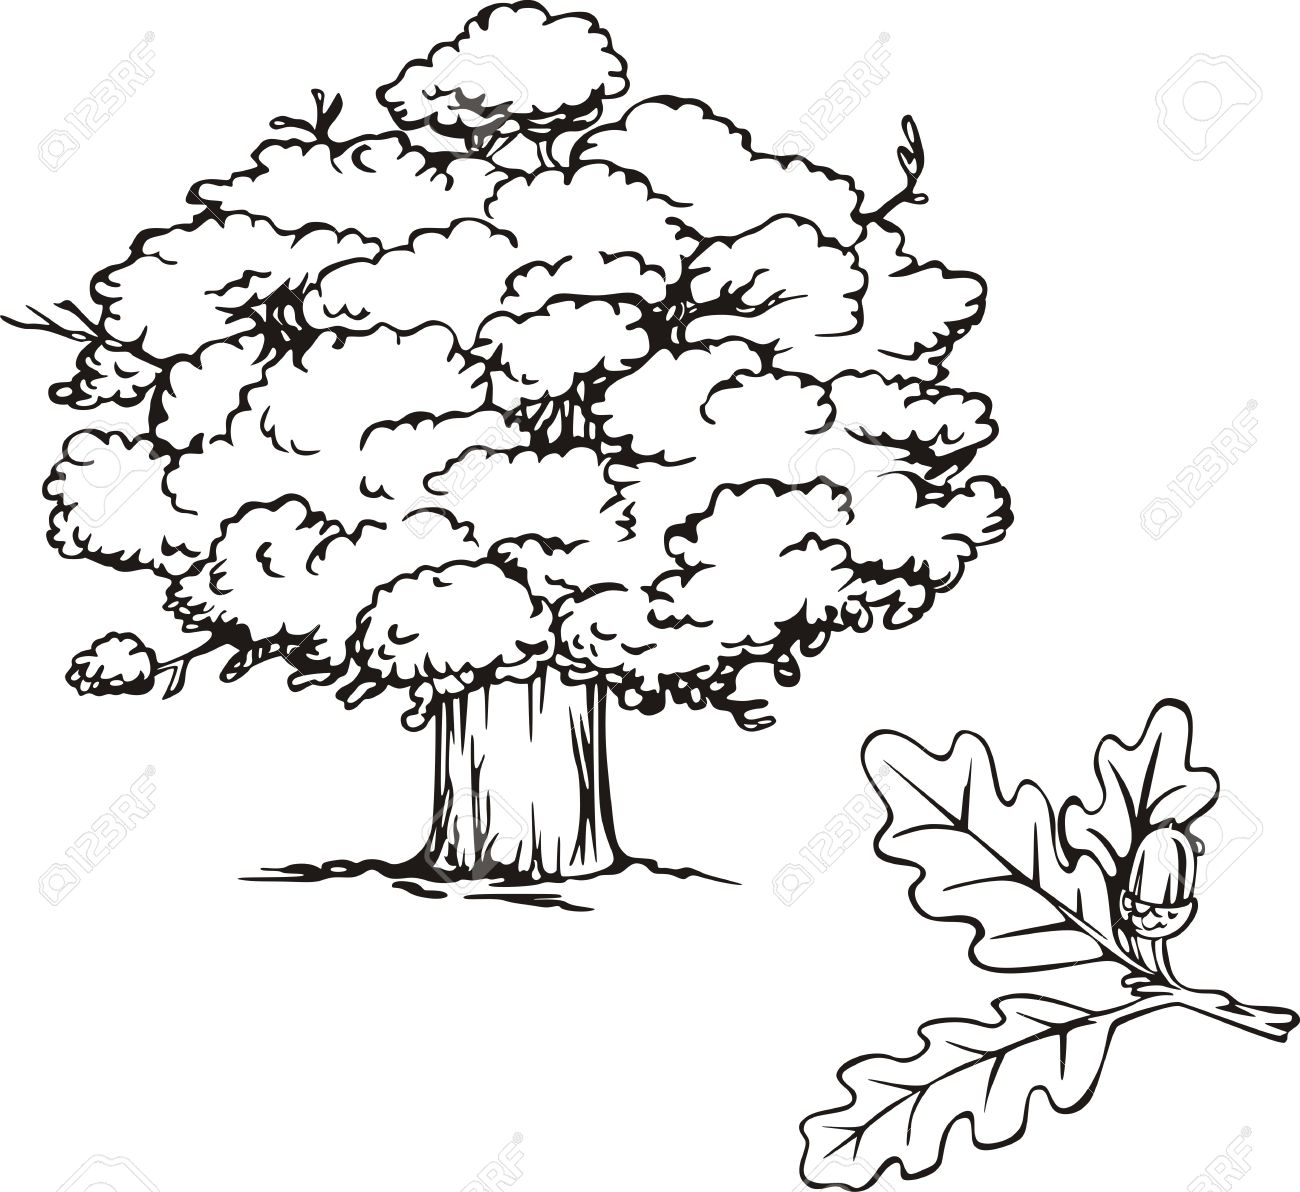 Oak tree and branch with acorn. Black and white  illustration. Stock Vector - 14744417